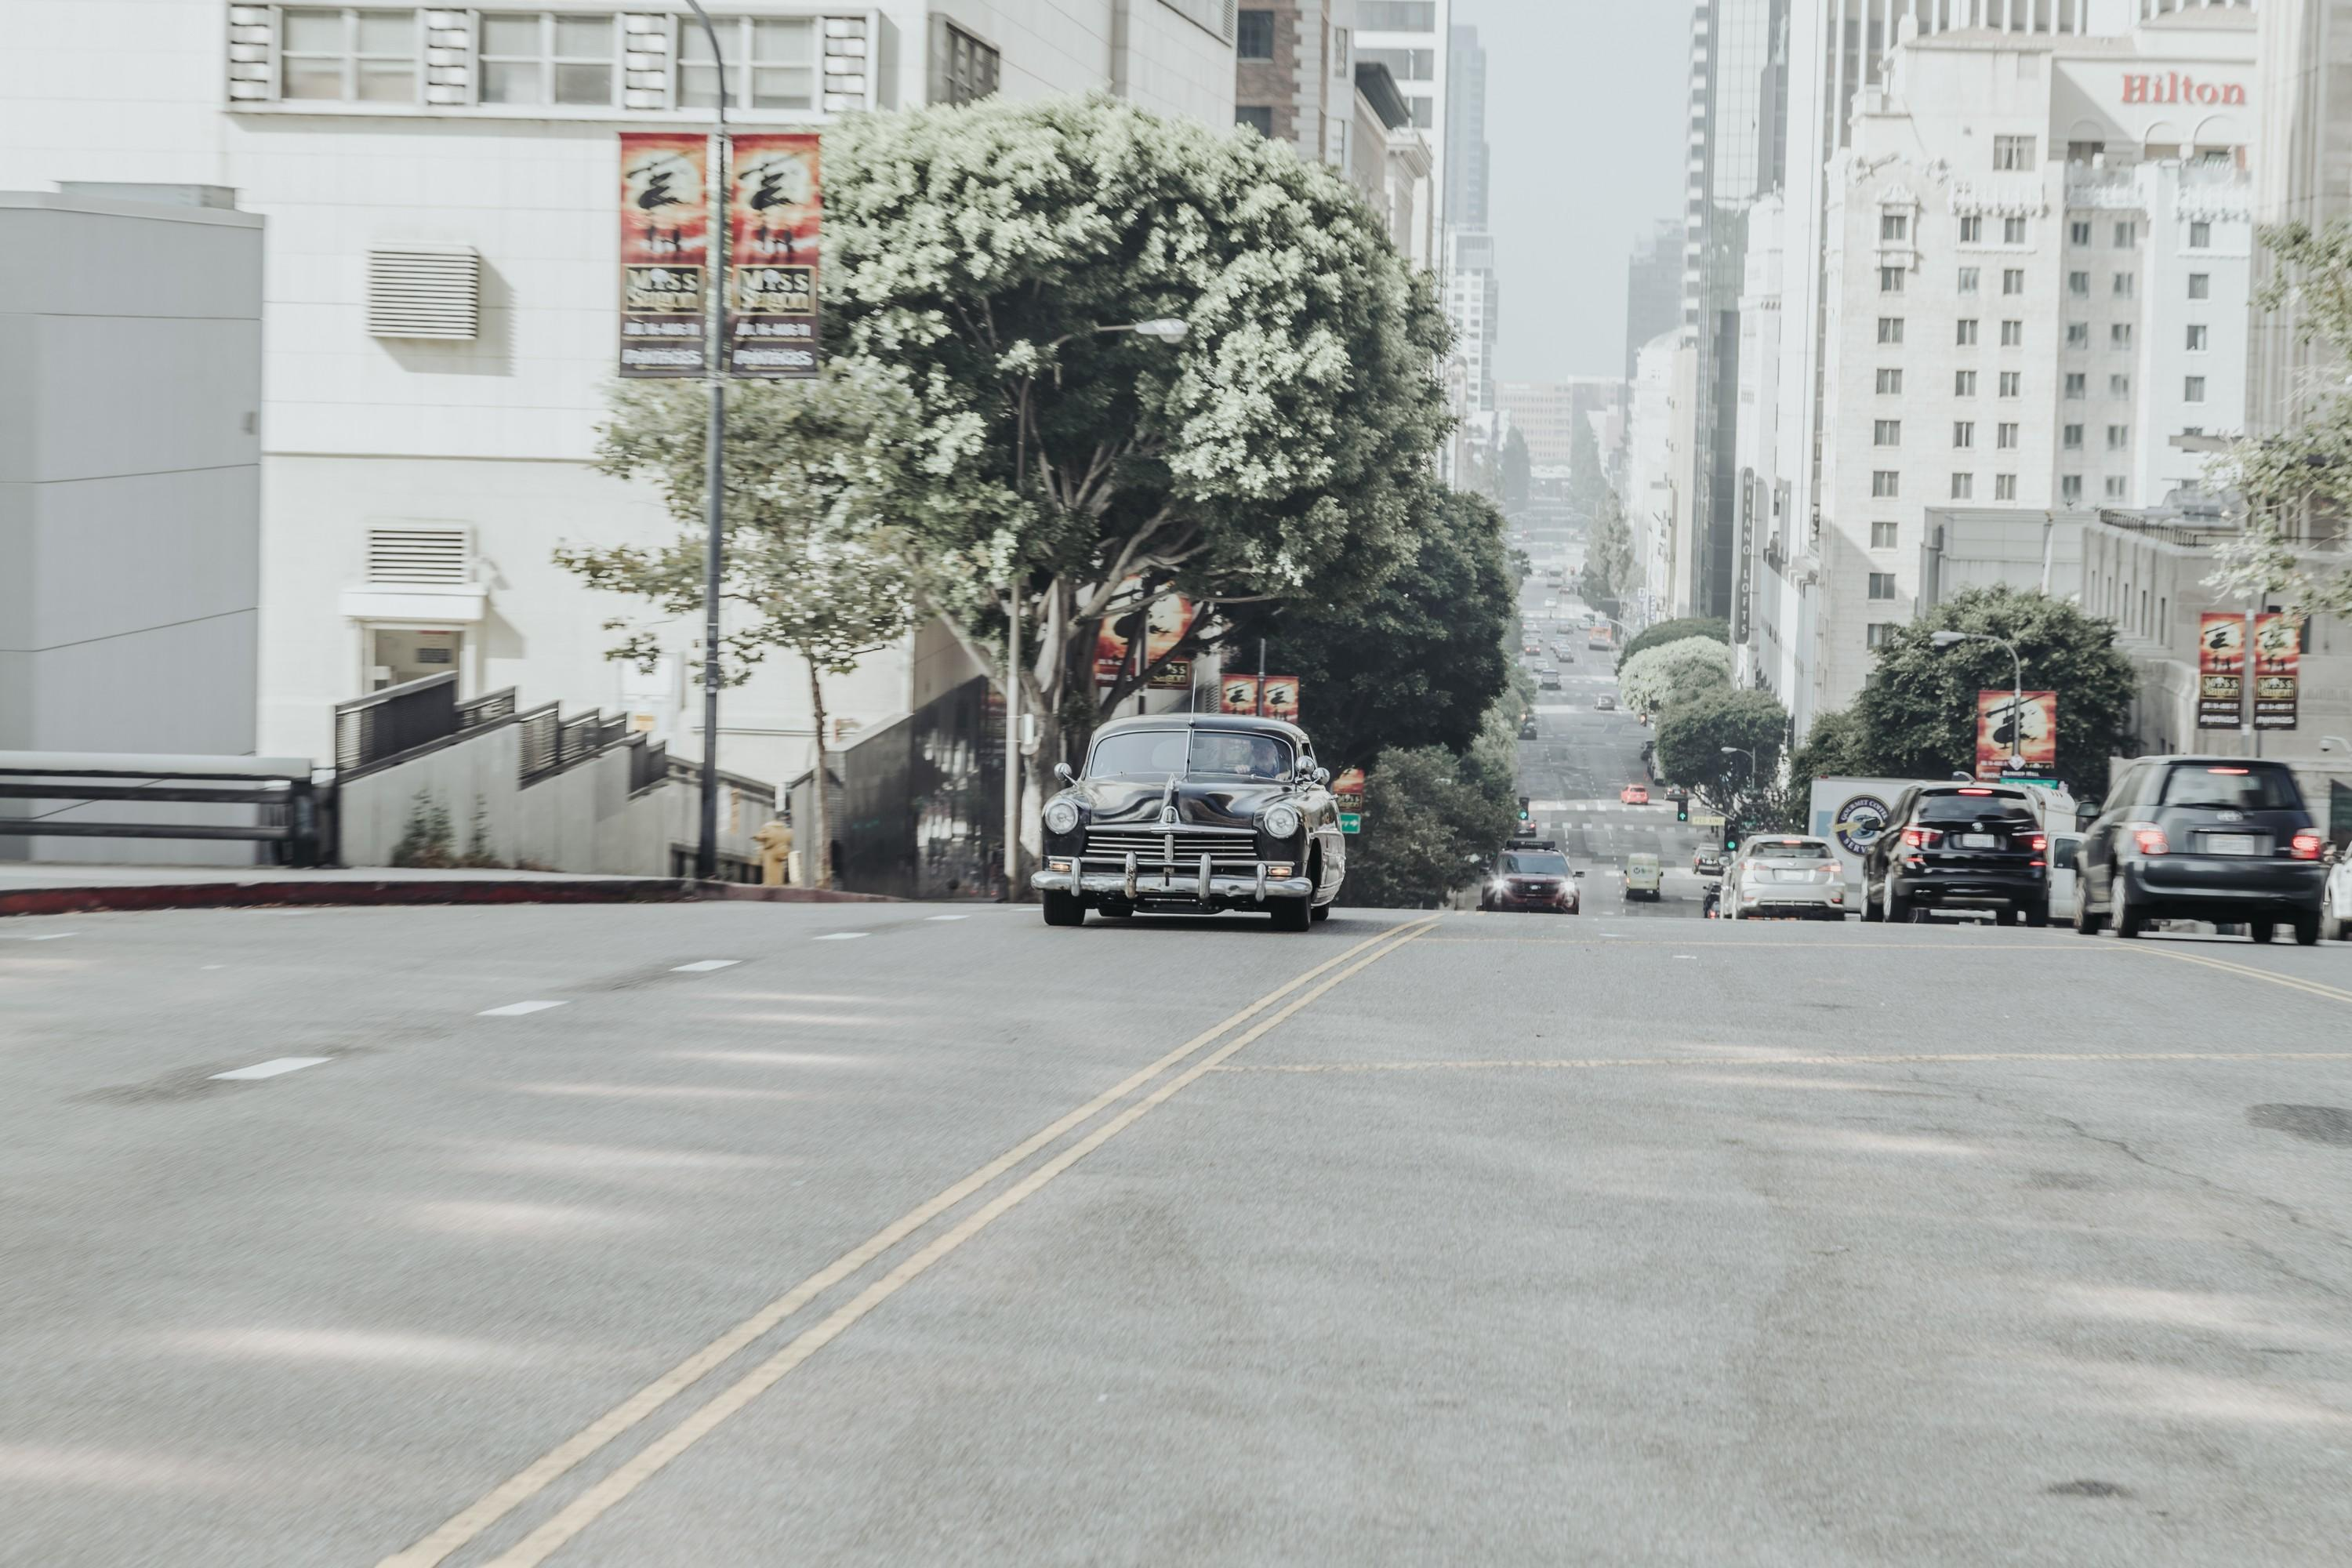 icon-hudson-derelict-driving-toward-cam-dtla-img-1365